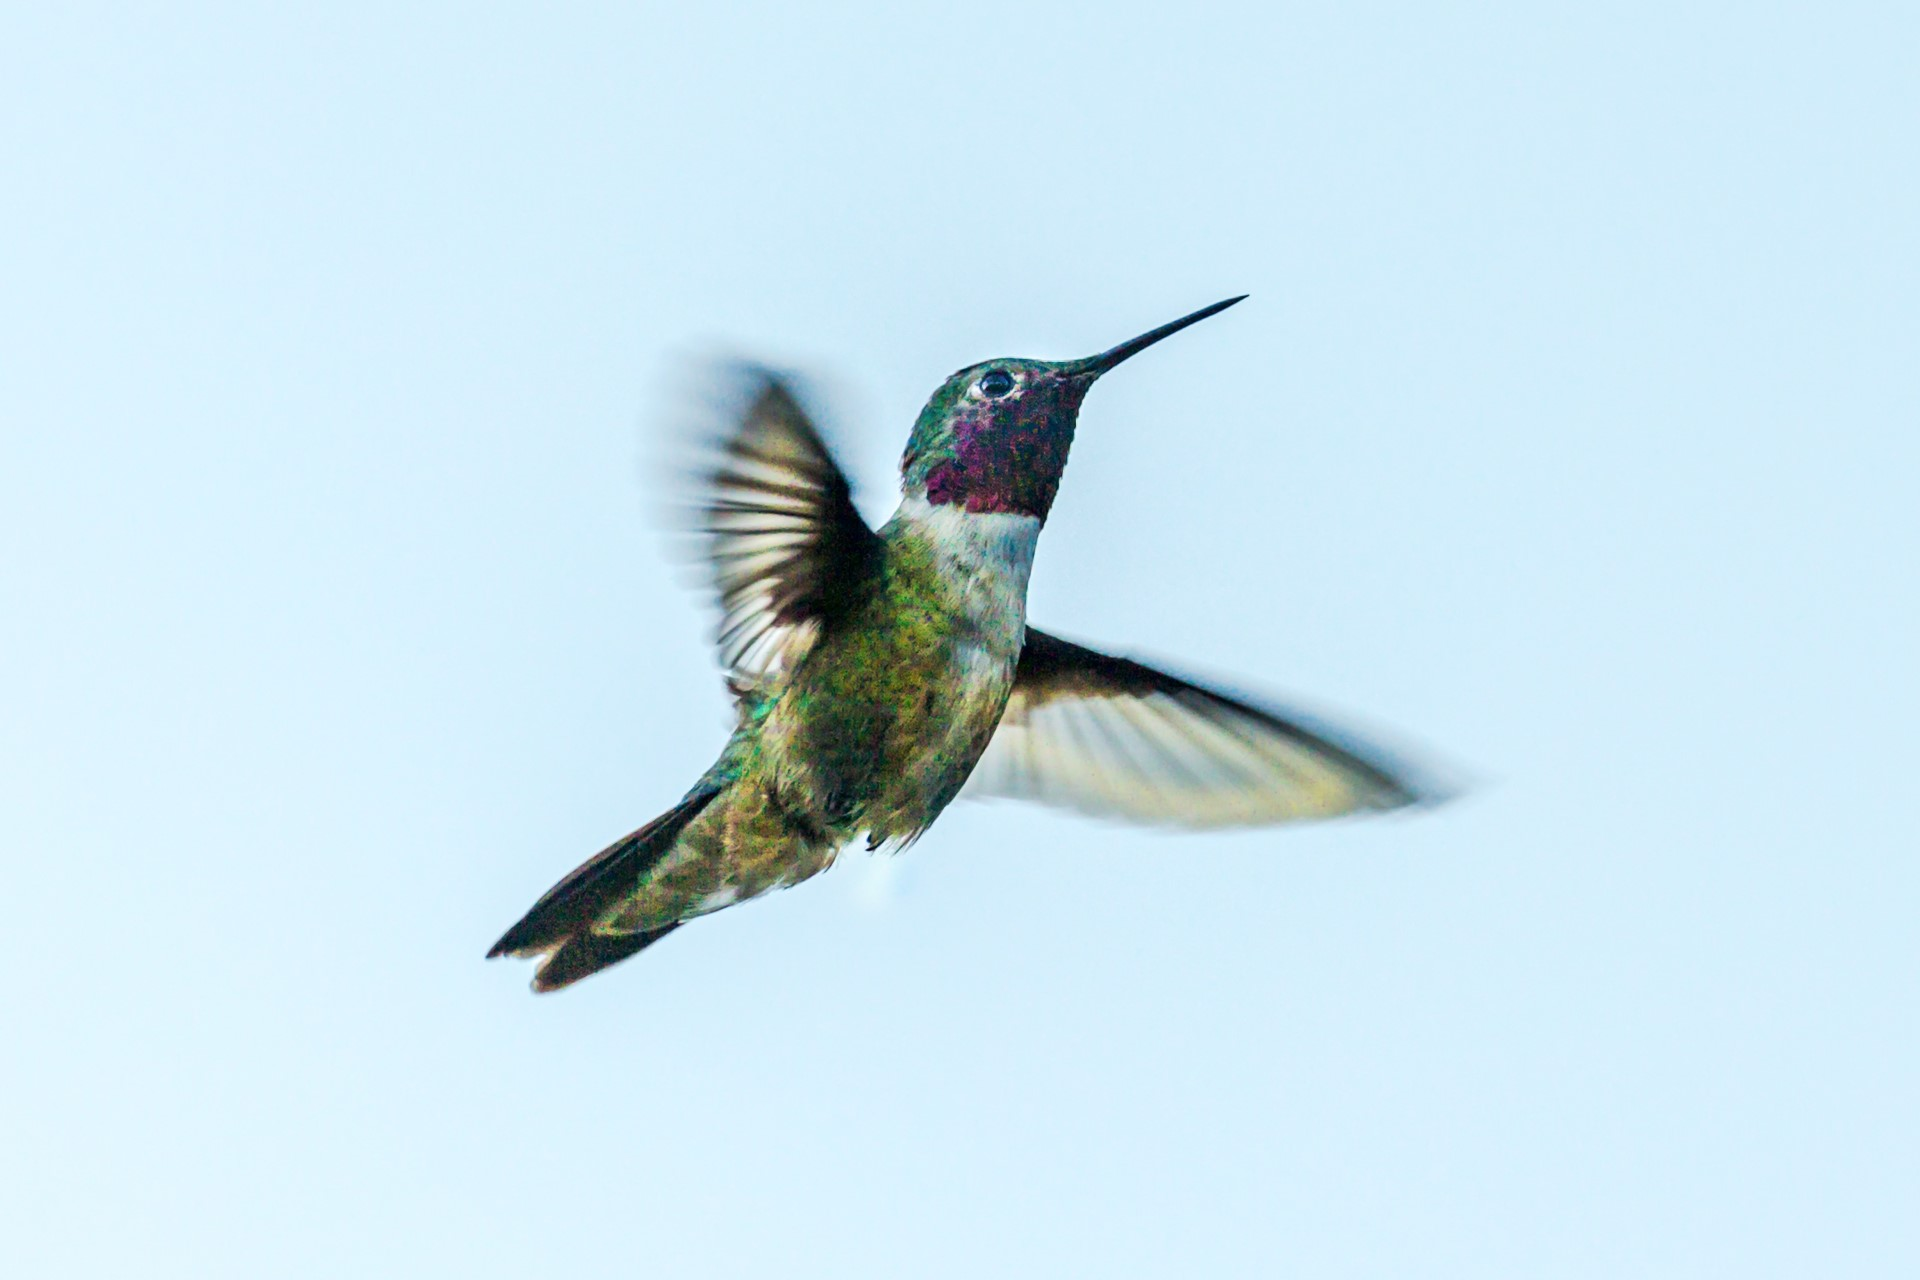 Why Are Hummingbirds Important, and How Can Rooftop Gardens Help Them?